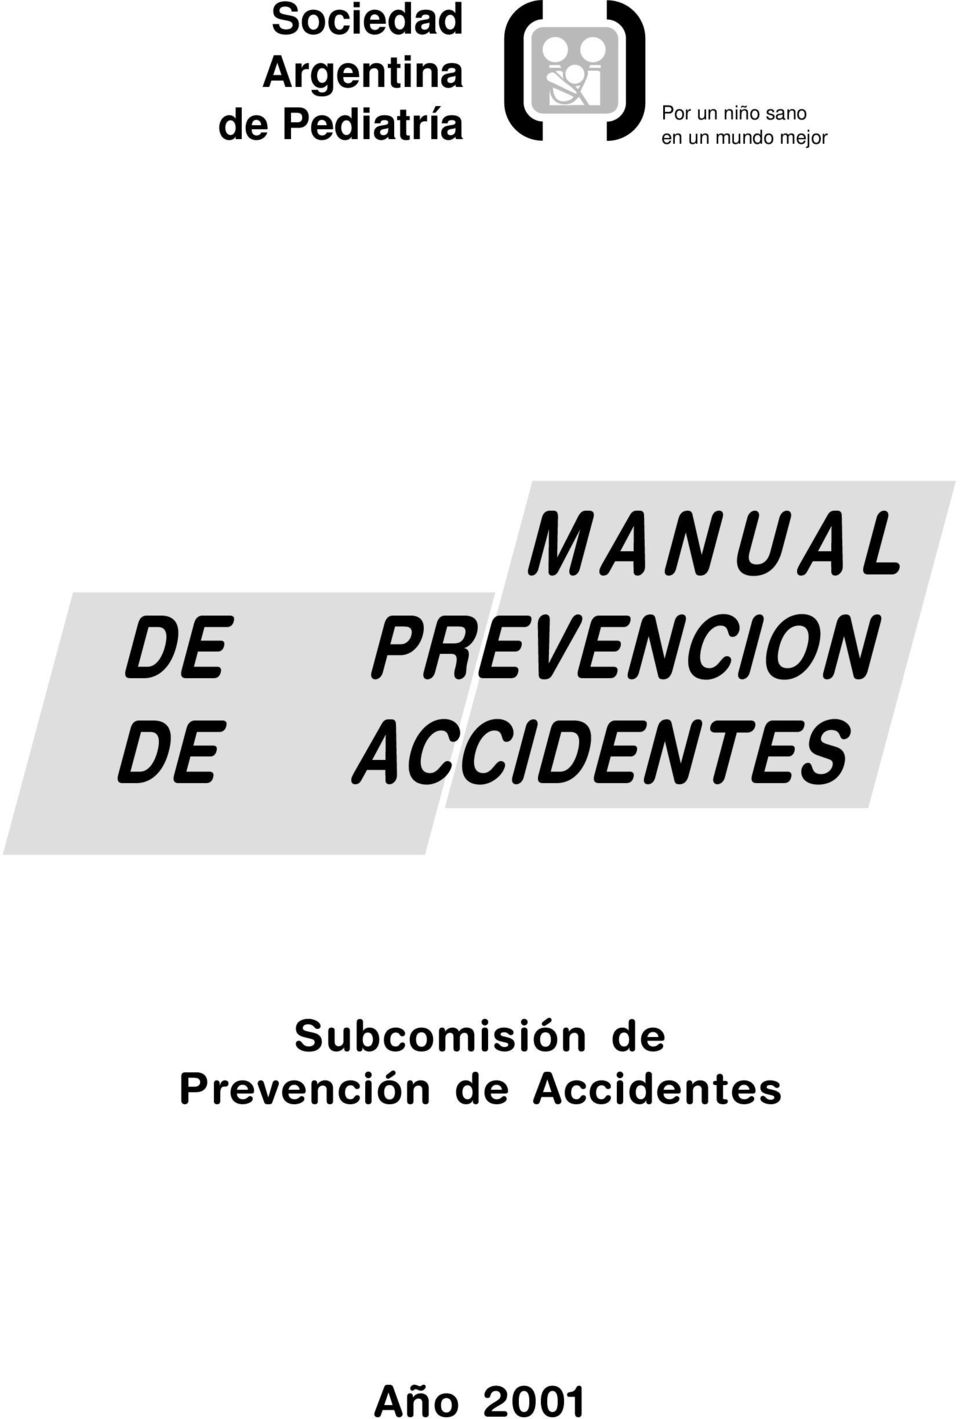 DE MANUAL PREVENCION ACCIDENTES